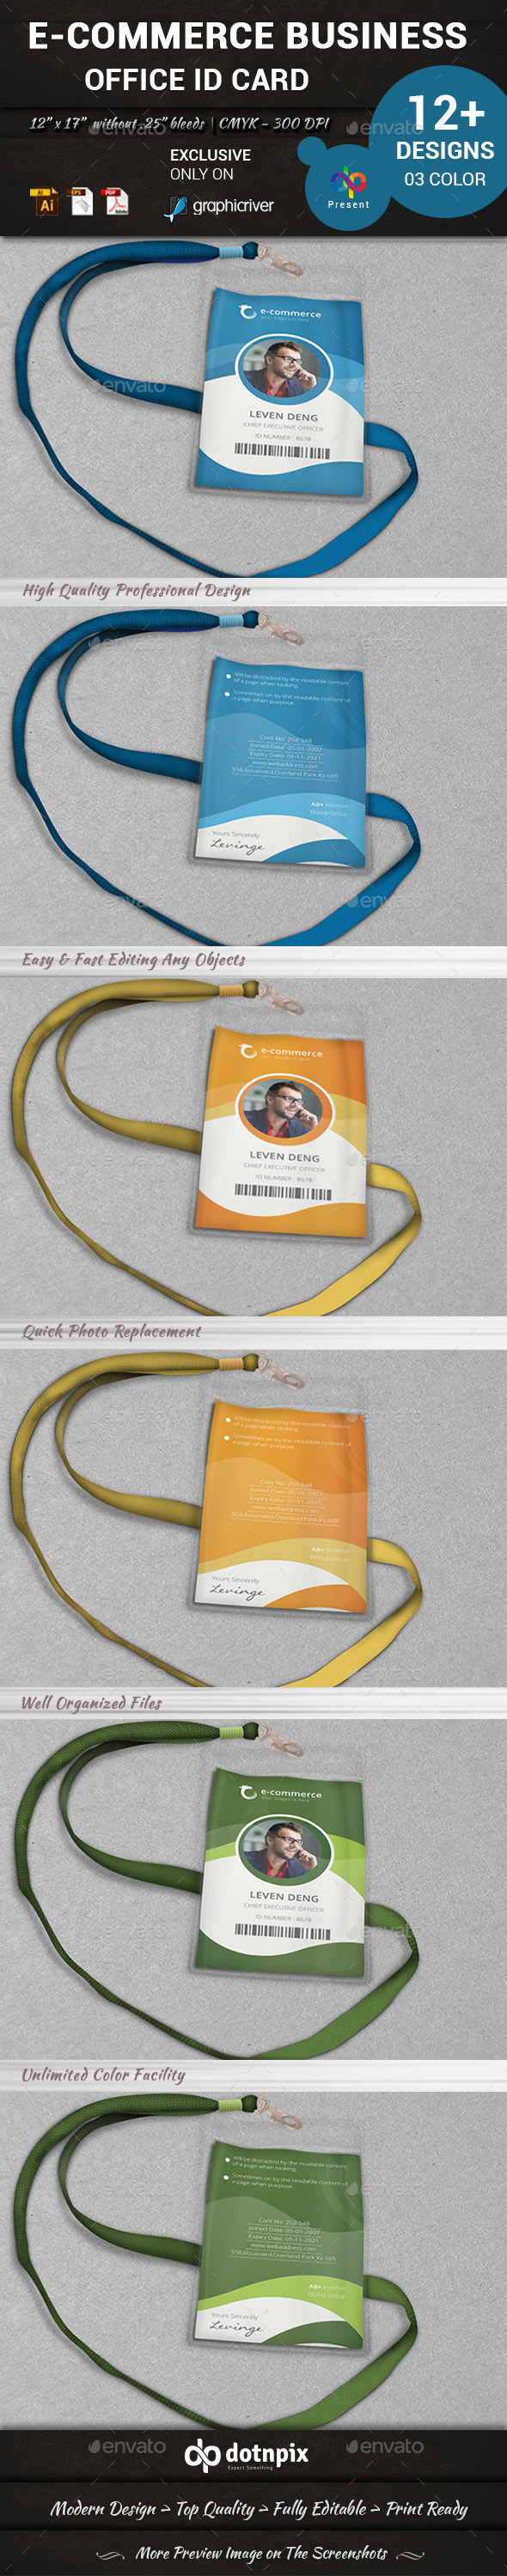 GraphicRiver E-Commerce Business Office ID Card 10302826